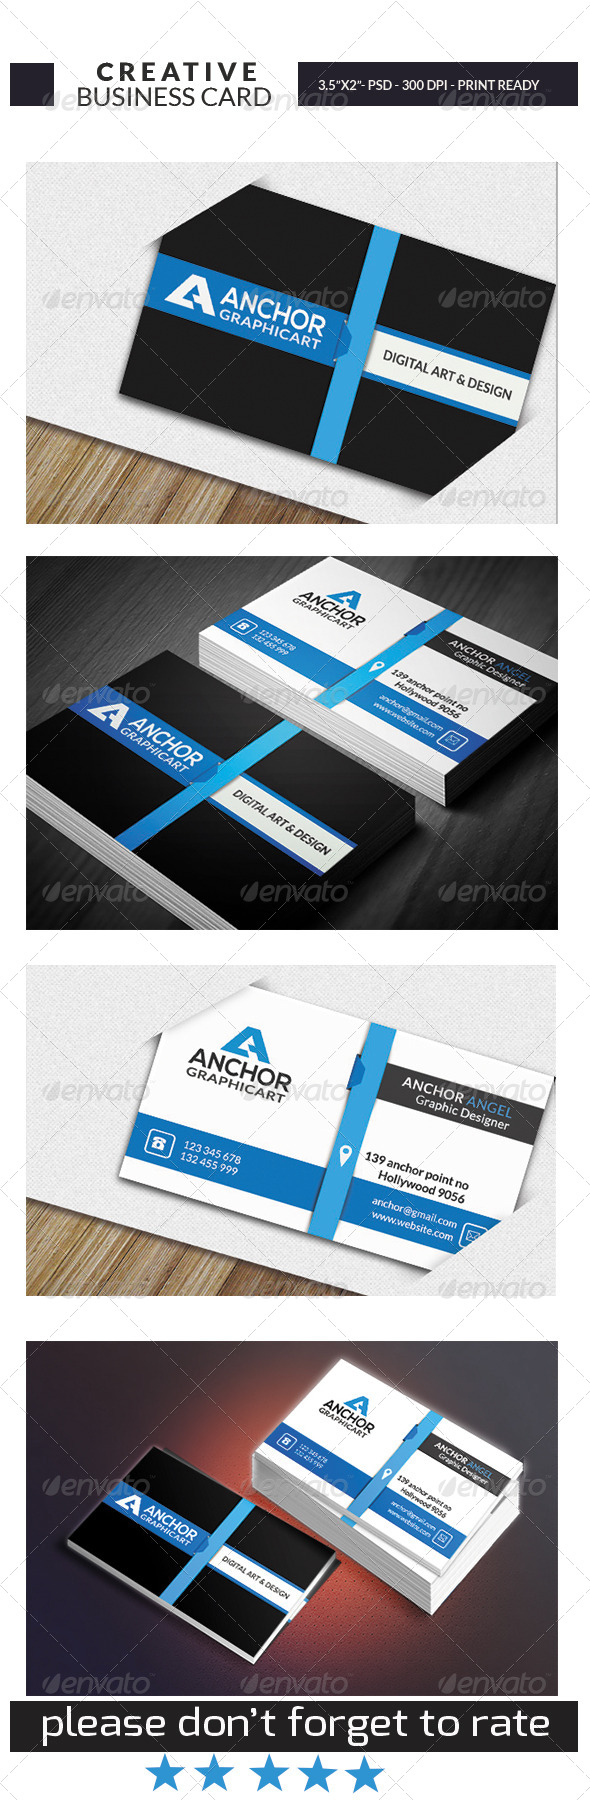 GraphicRiver Creative Business Card Template 8574754